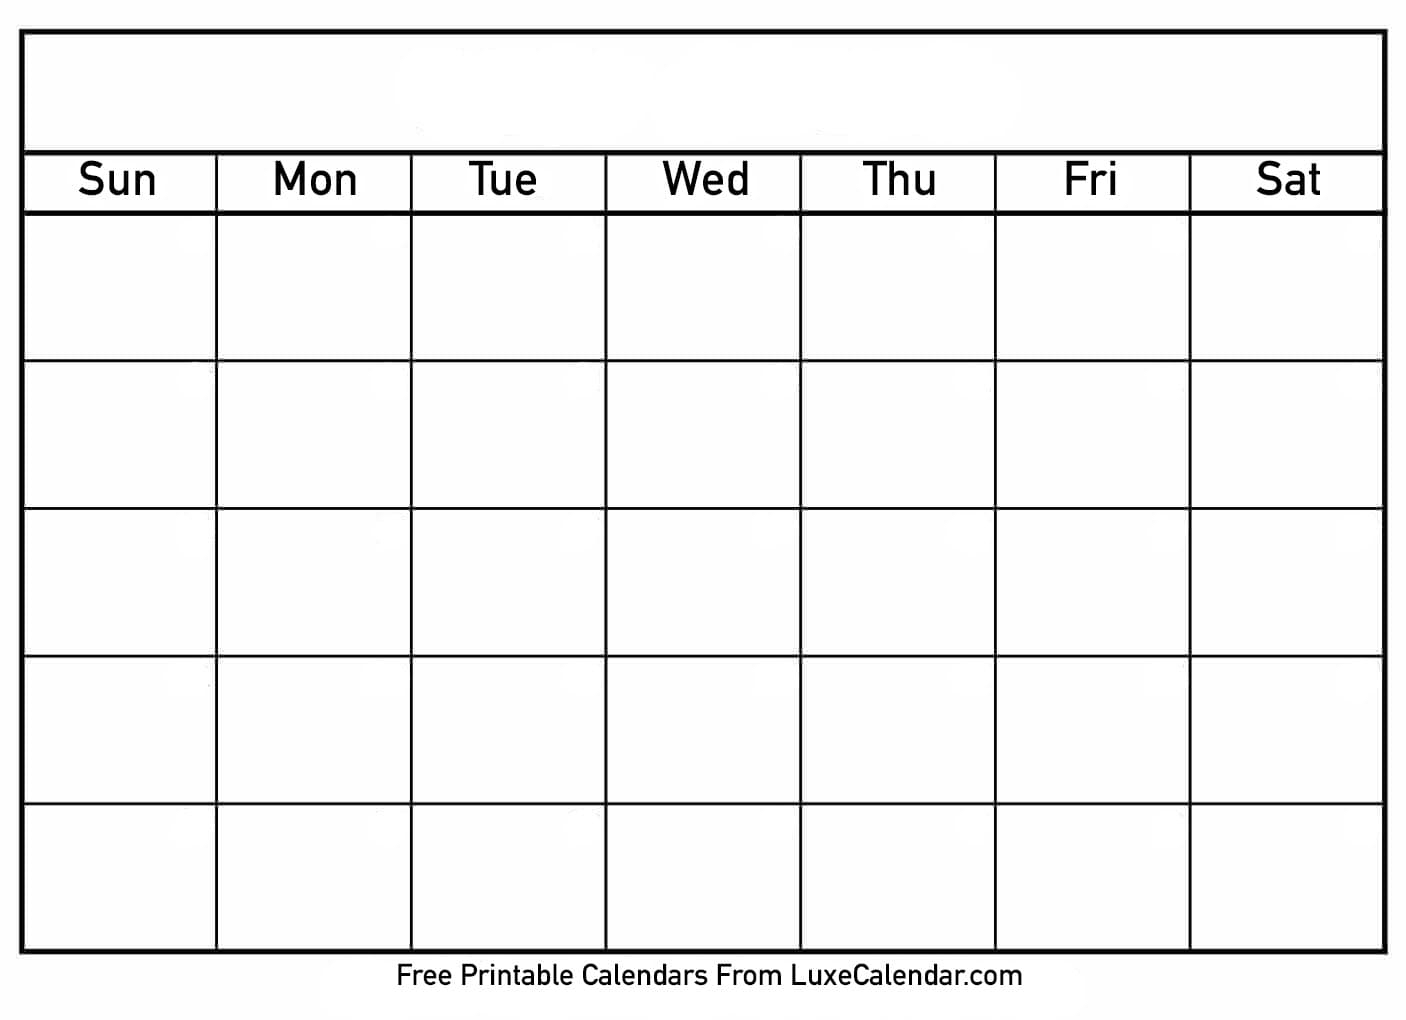 Empty Schedule Template Weekly Class Blank Printable Calendar | Smorad within Full Size Blank Printable Calendar